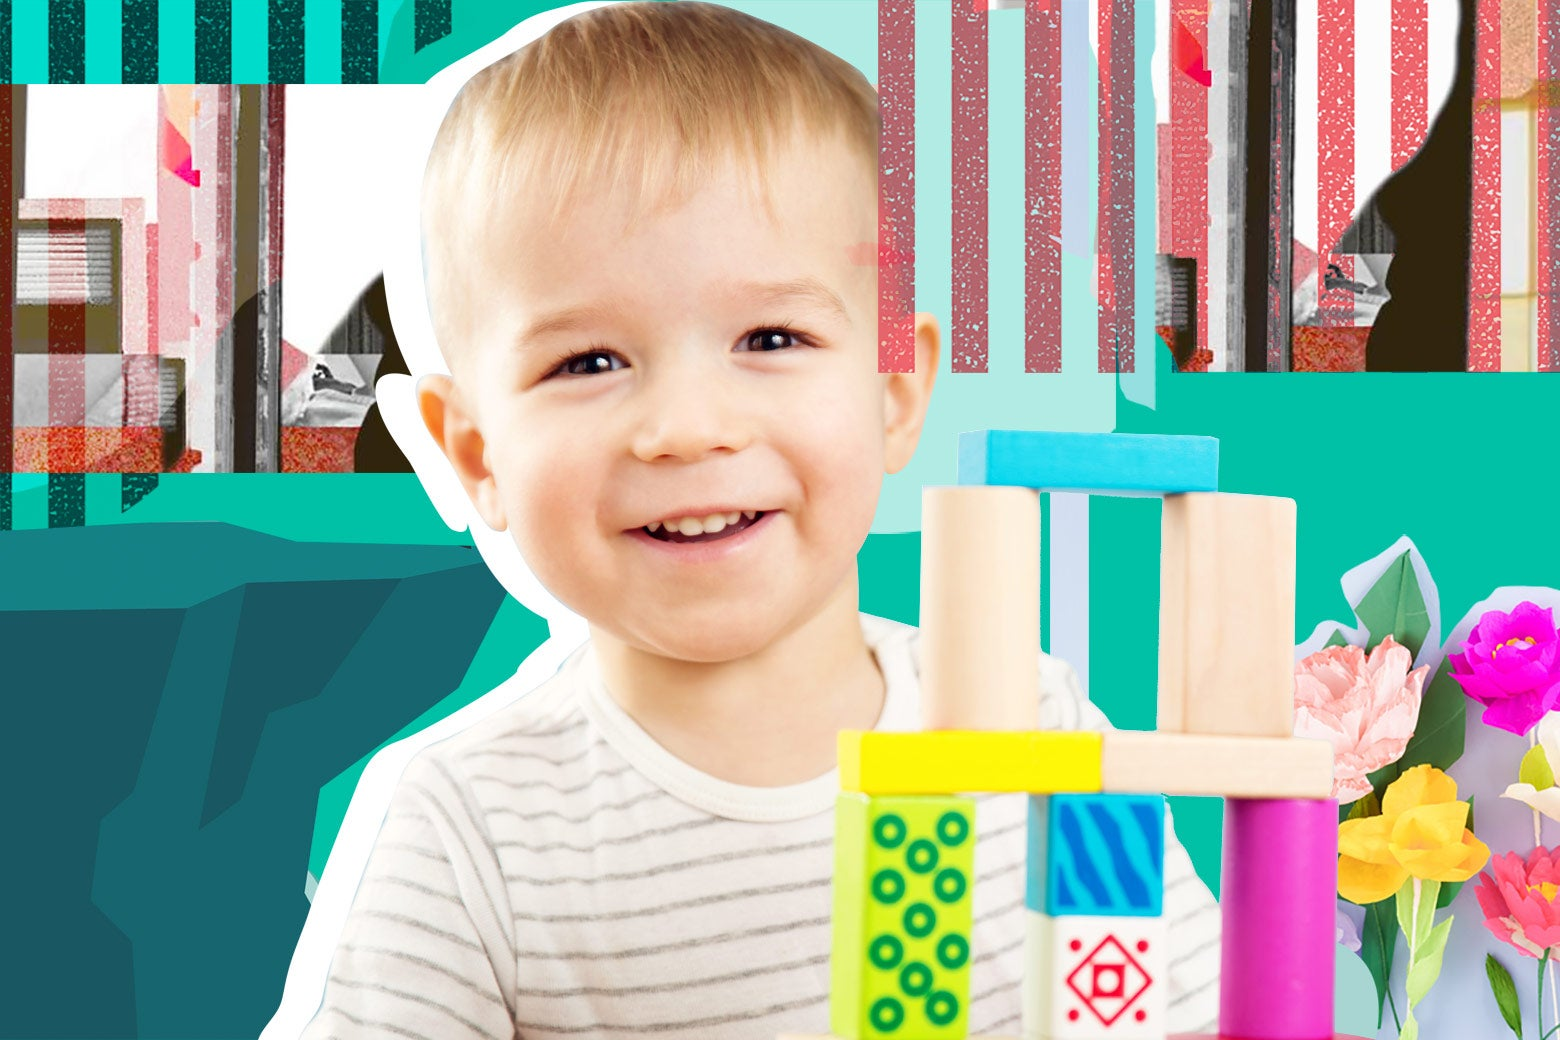 A small boy playing with blocks in front of a collage of stripes, flowers, and a cliff.